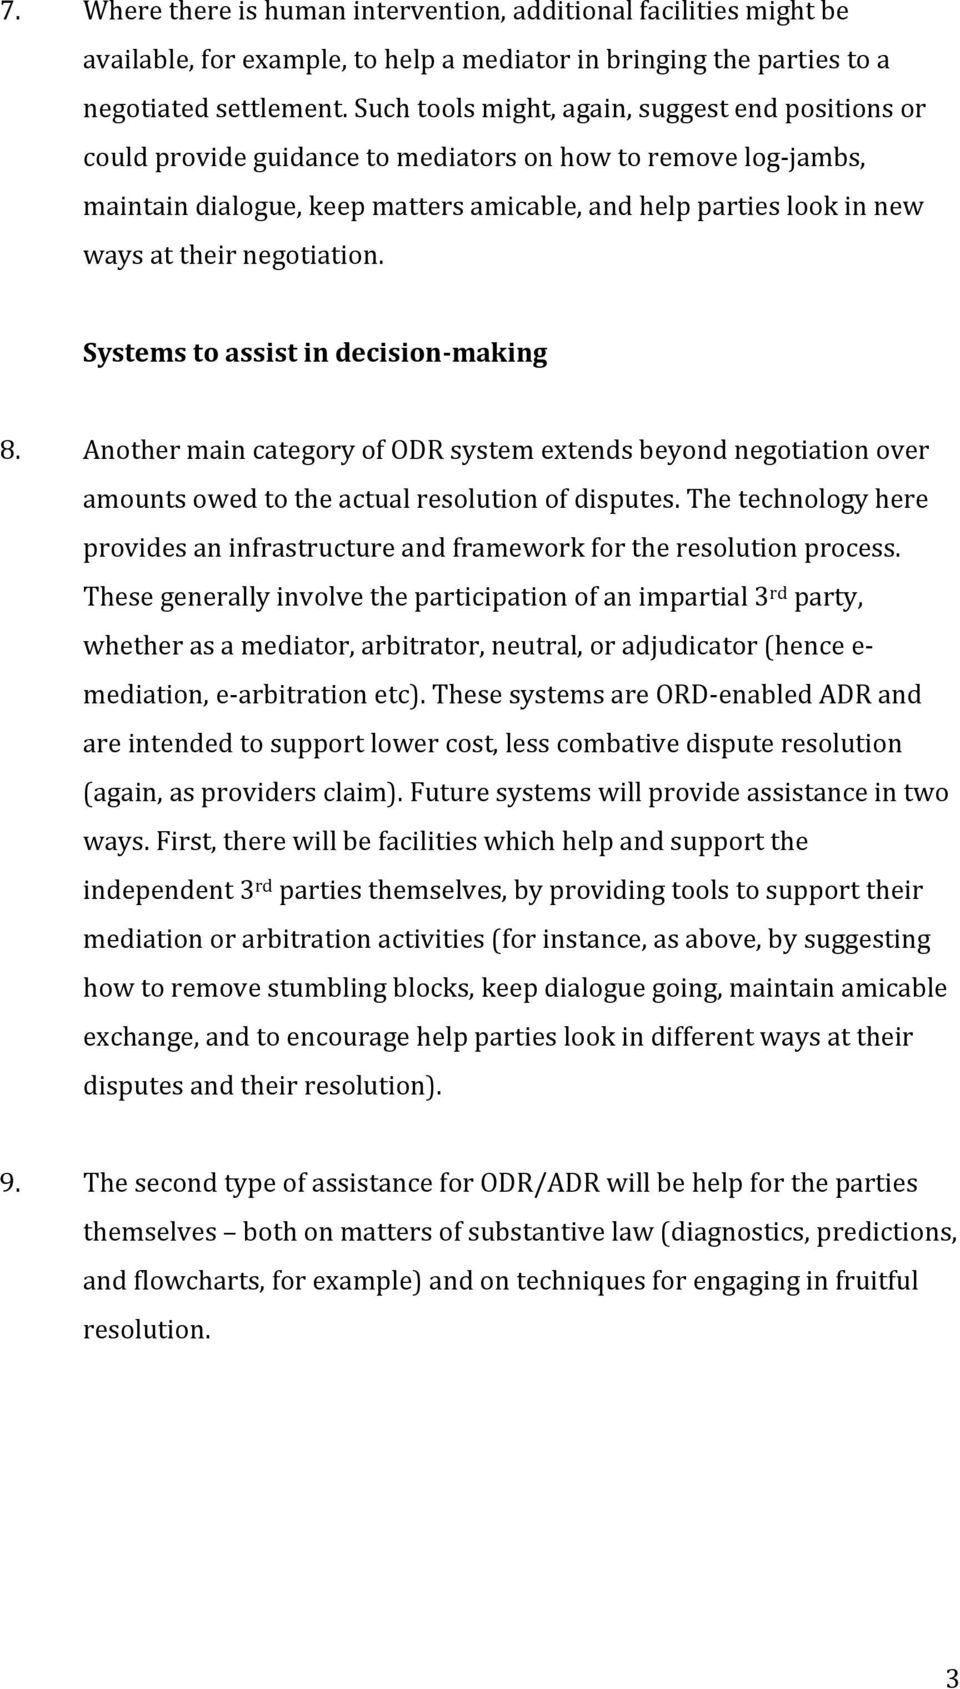 negotiation. Systems to assist in decision making 8. Another main category of ODR system extends beyond negotiation over amounts owed to the actual resolution of disputes.